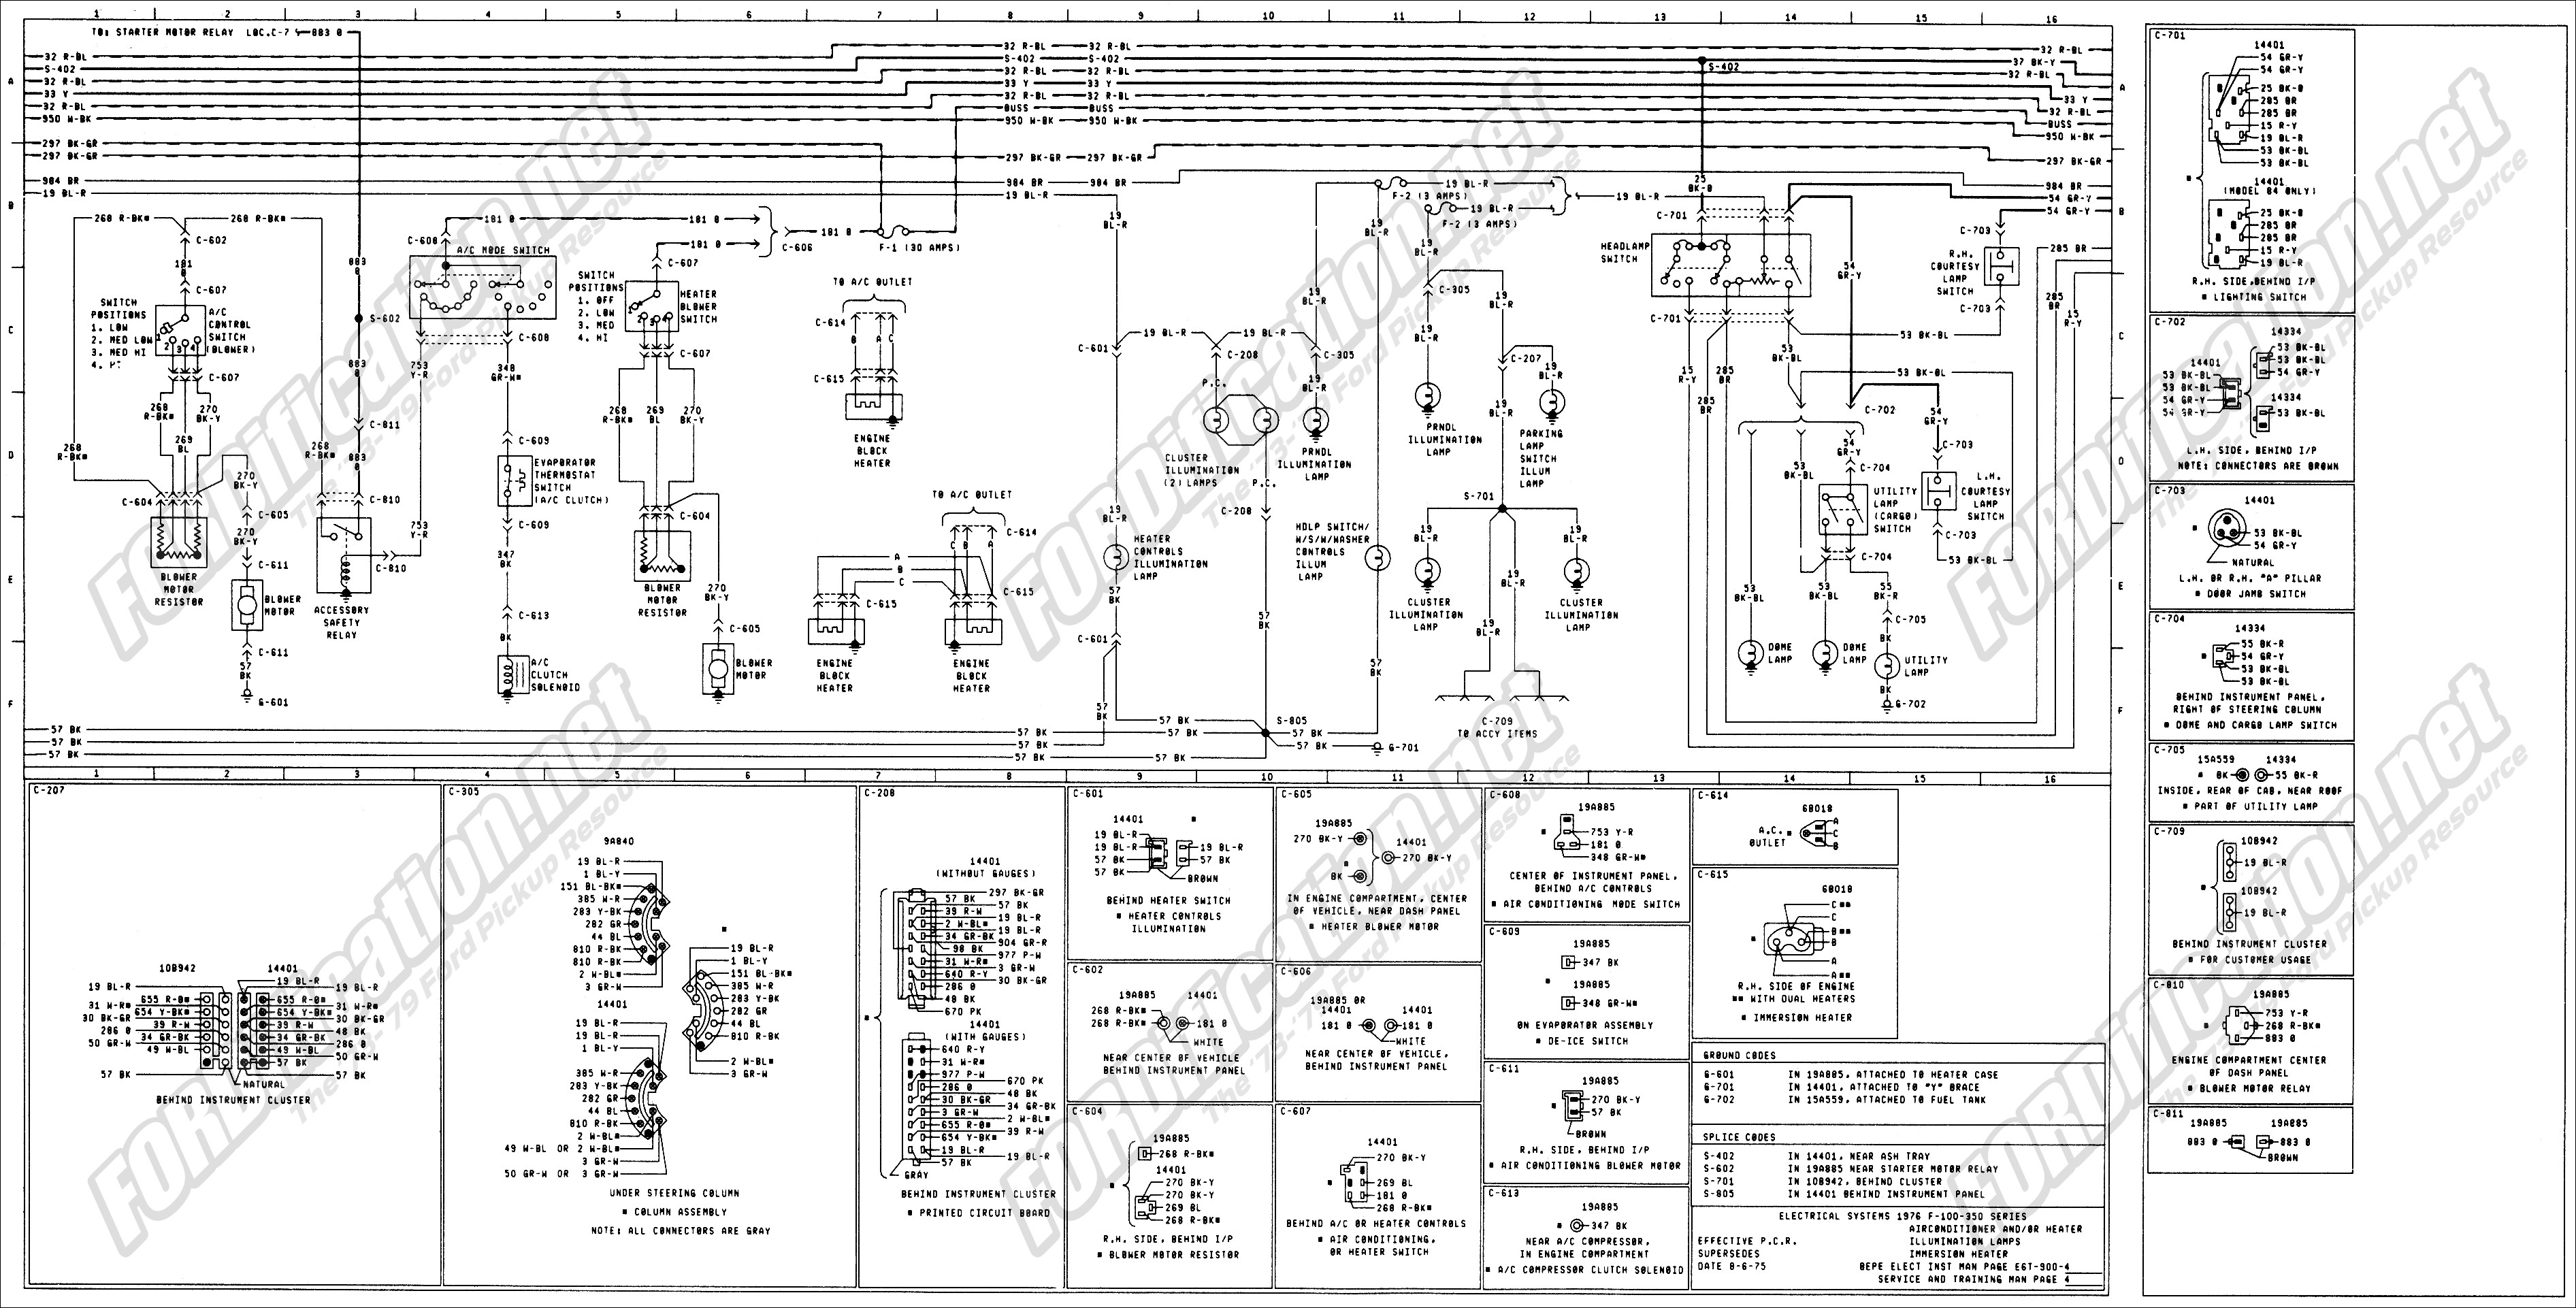 2000 ford F150 Wiring Diagram 1973 1979 ford Truck Wiring Diagrams & Schematics fordification Of 2000 ford F150 Wiring Diagram